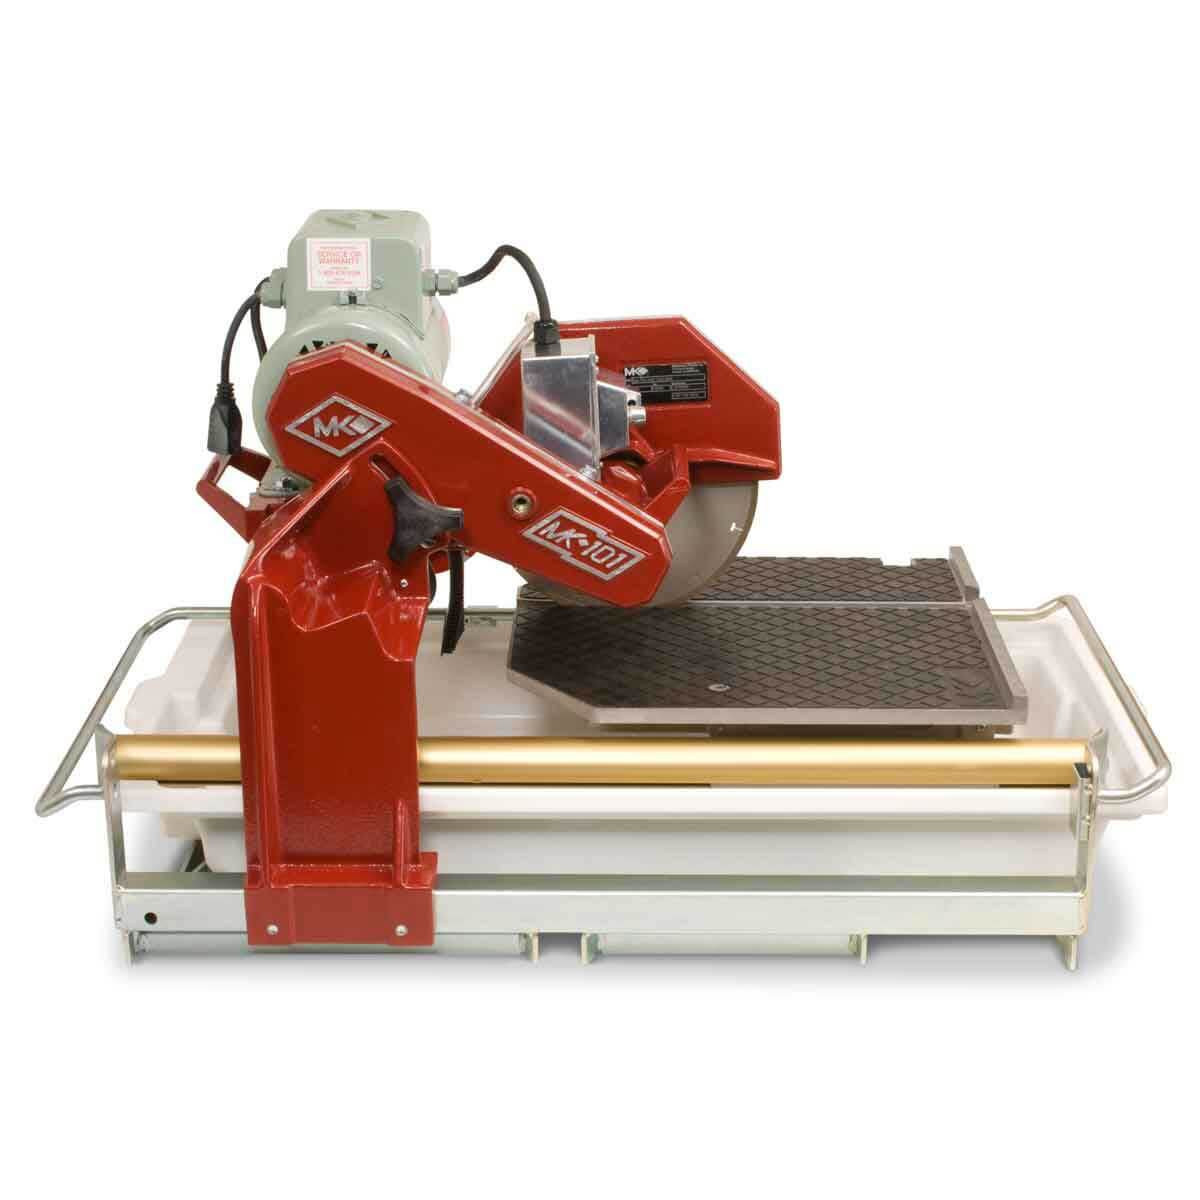 MK-101 PRO Wet Tile Saw 2